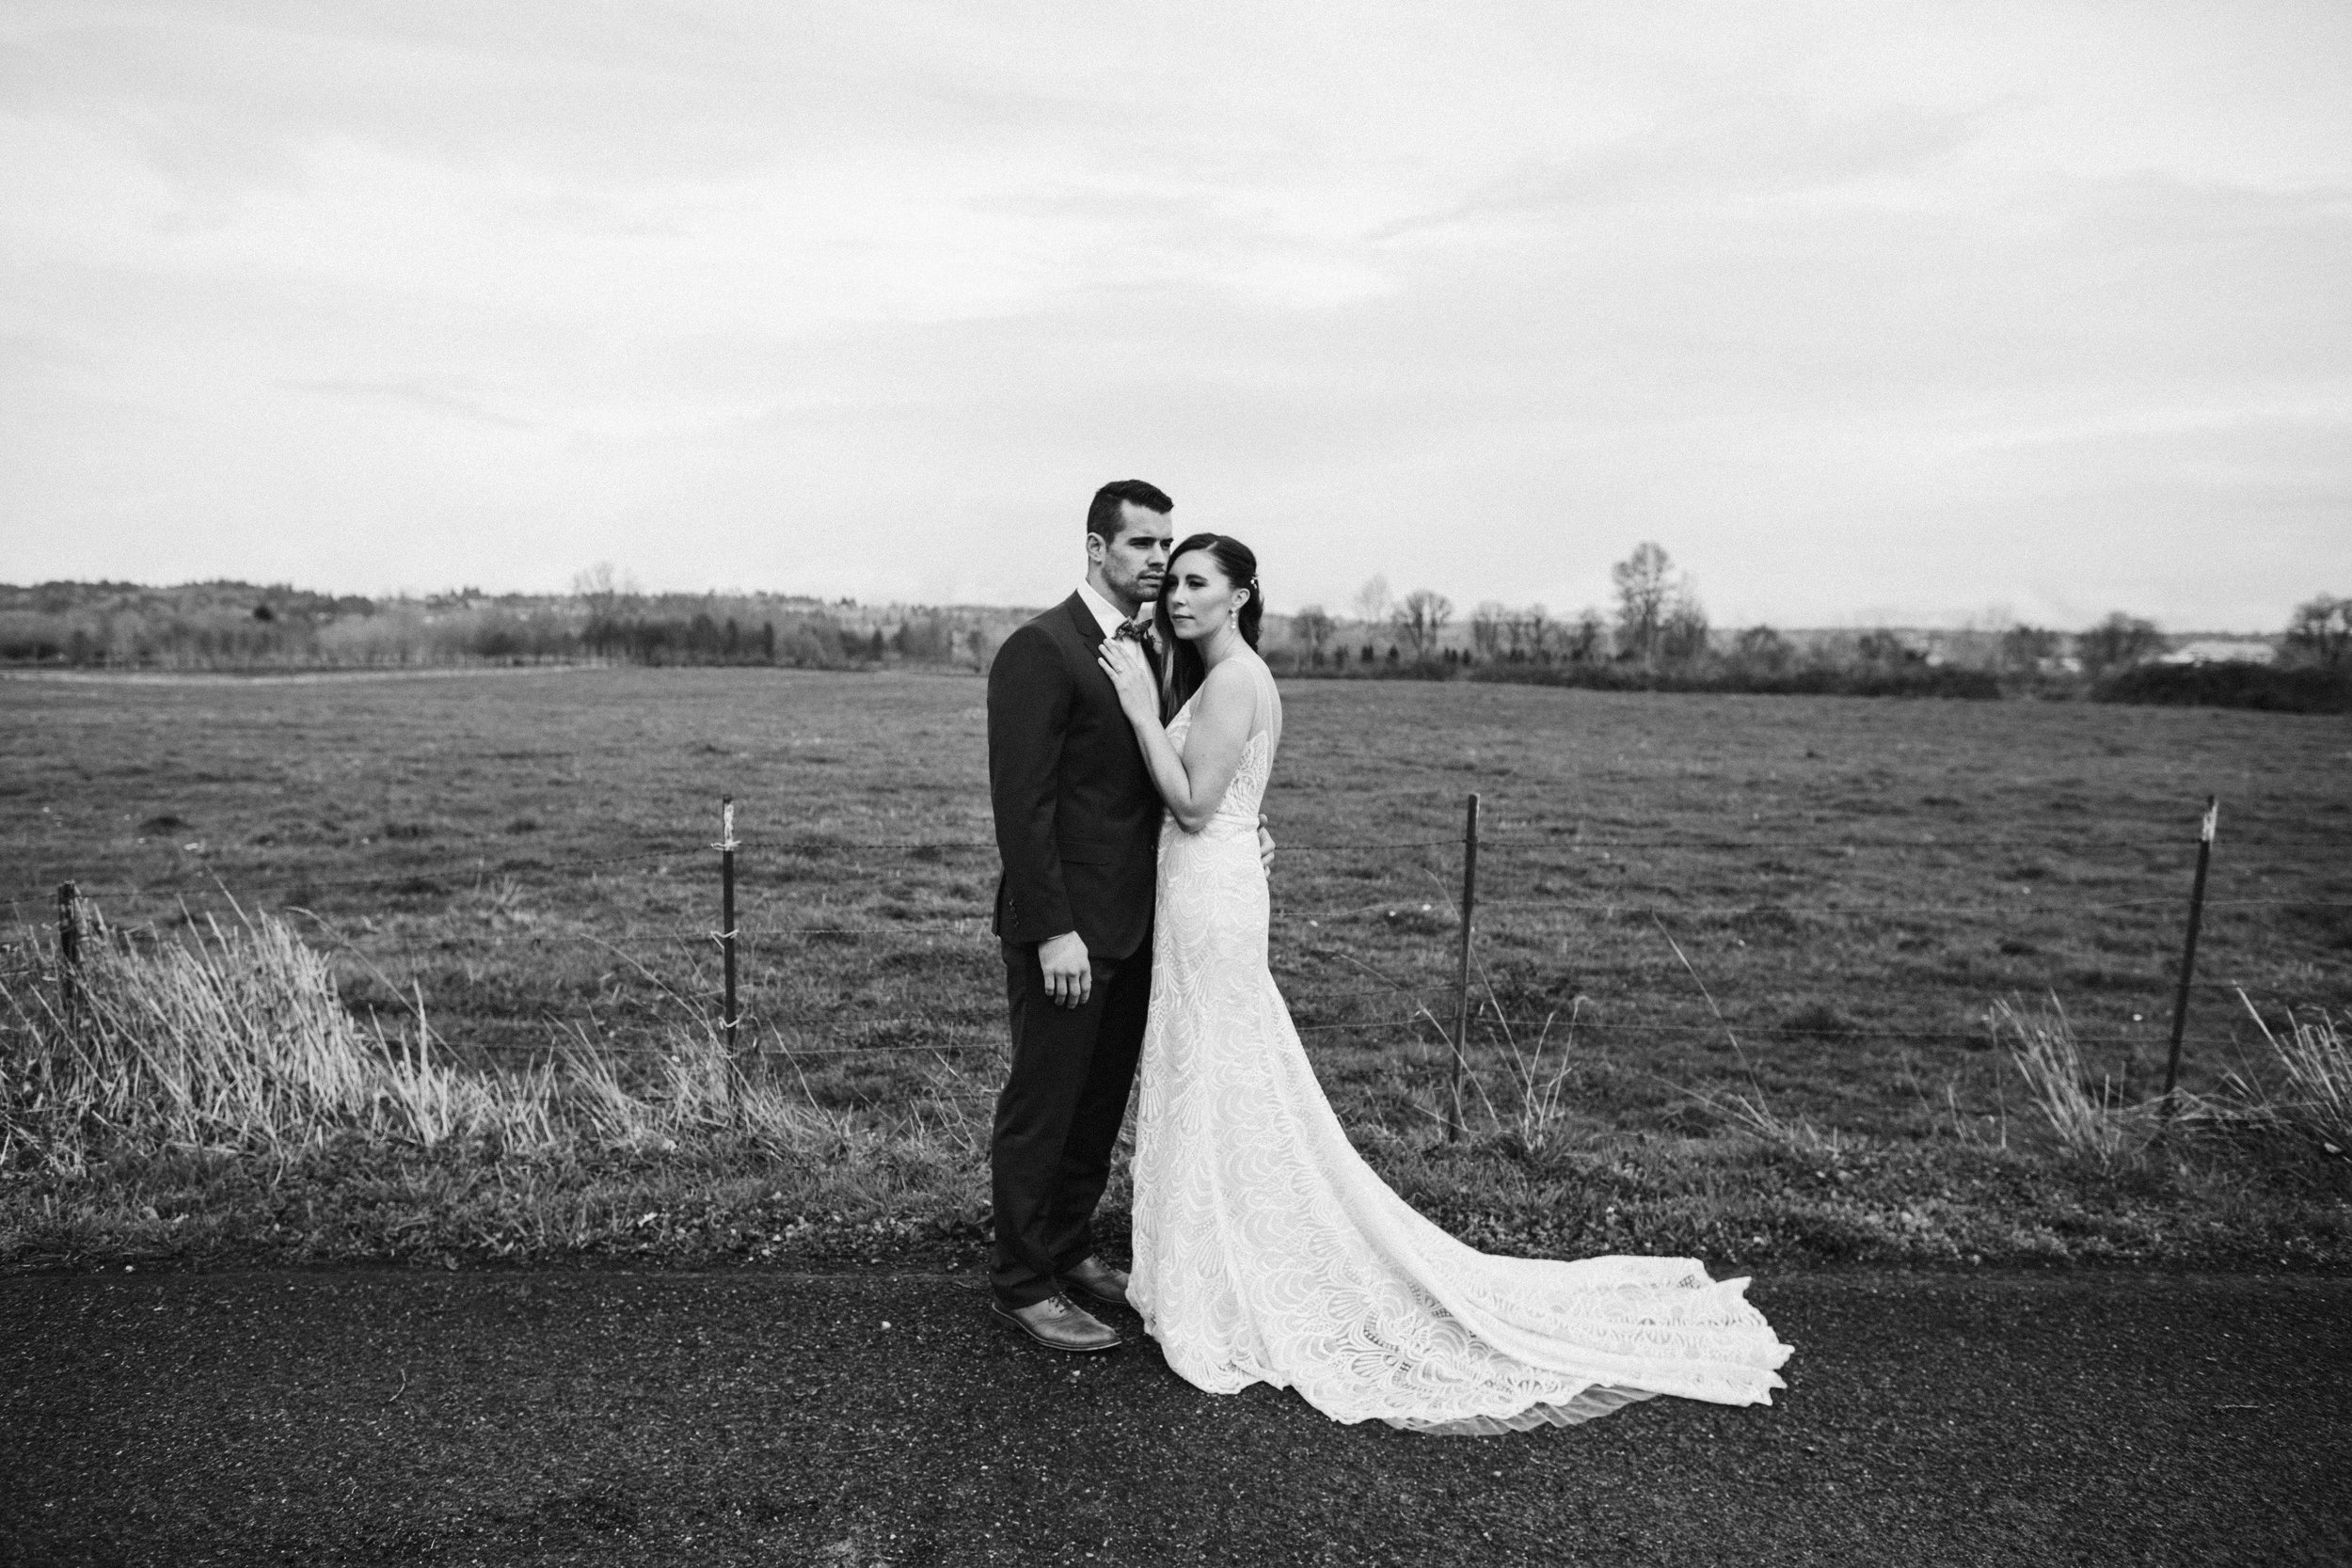 Sevlynn-Snohomish-Dairyland-Wedding-Photography-PNW-18.jpg